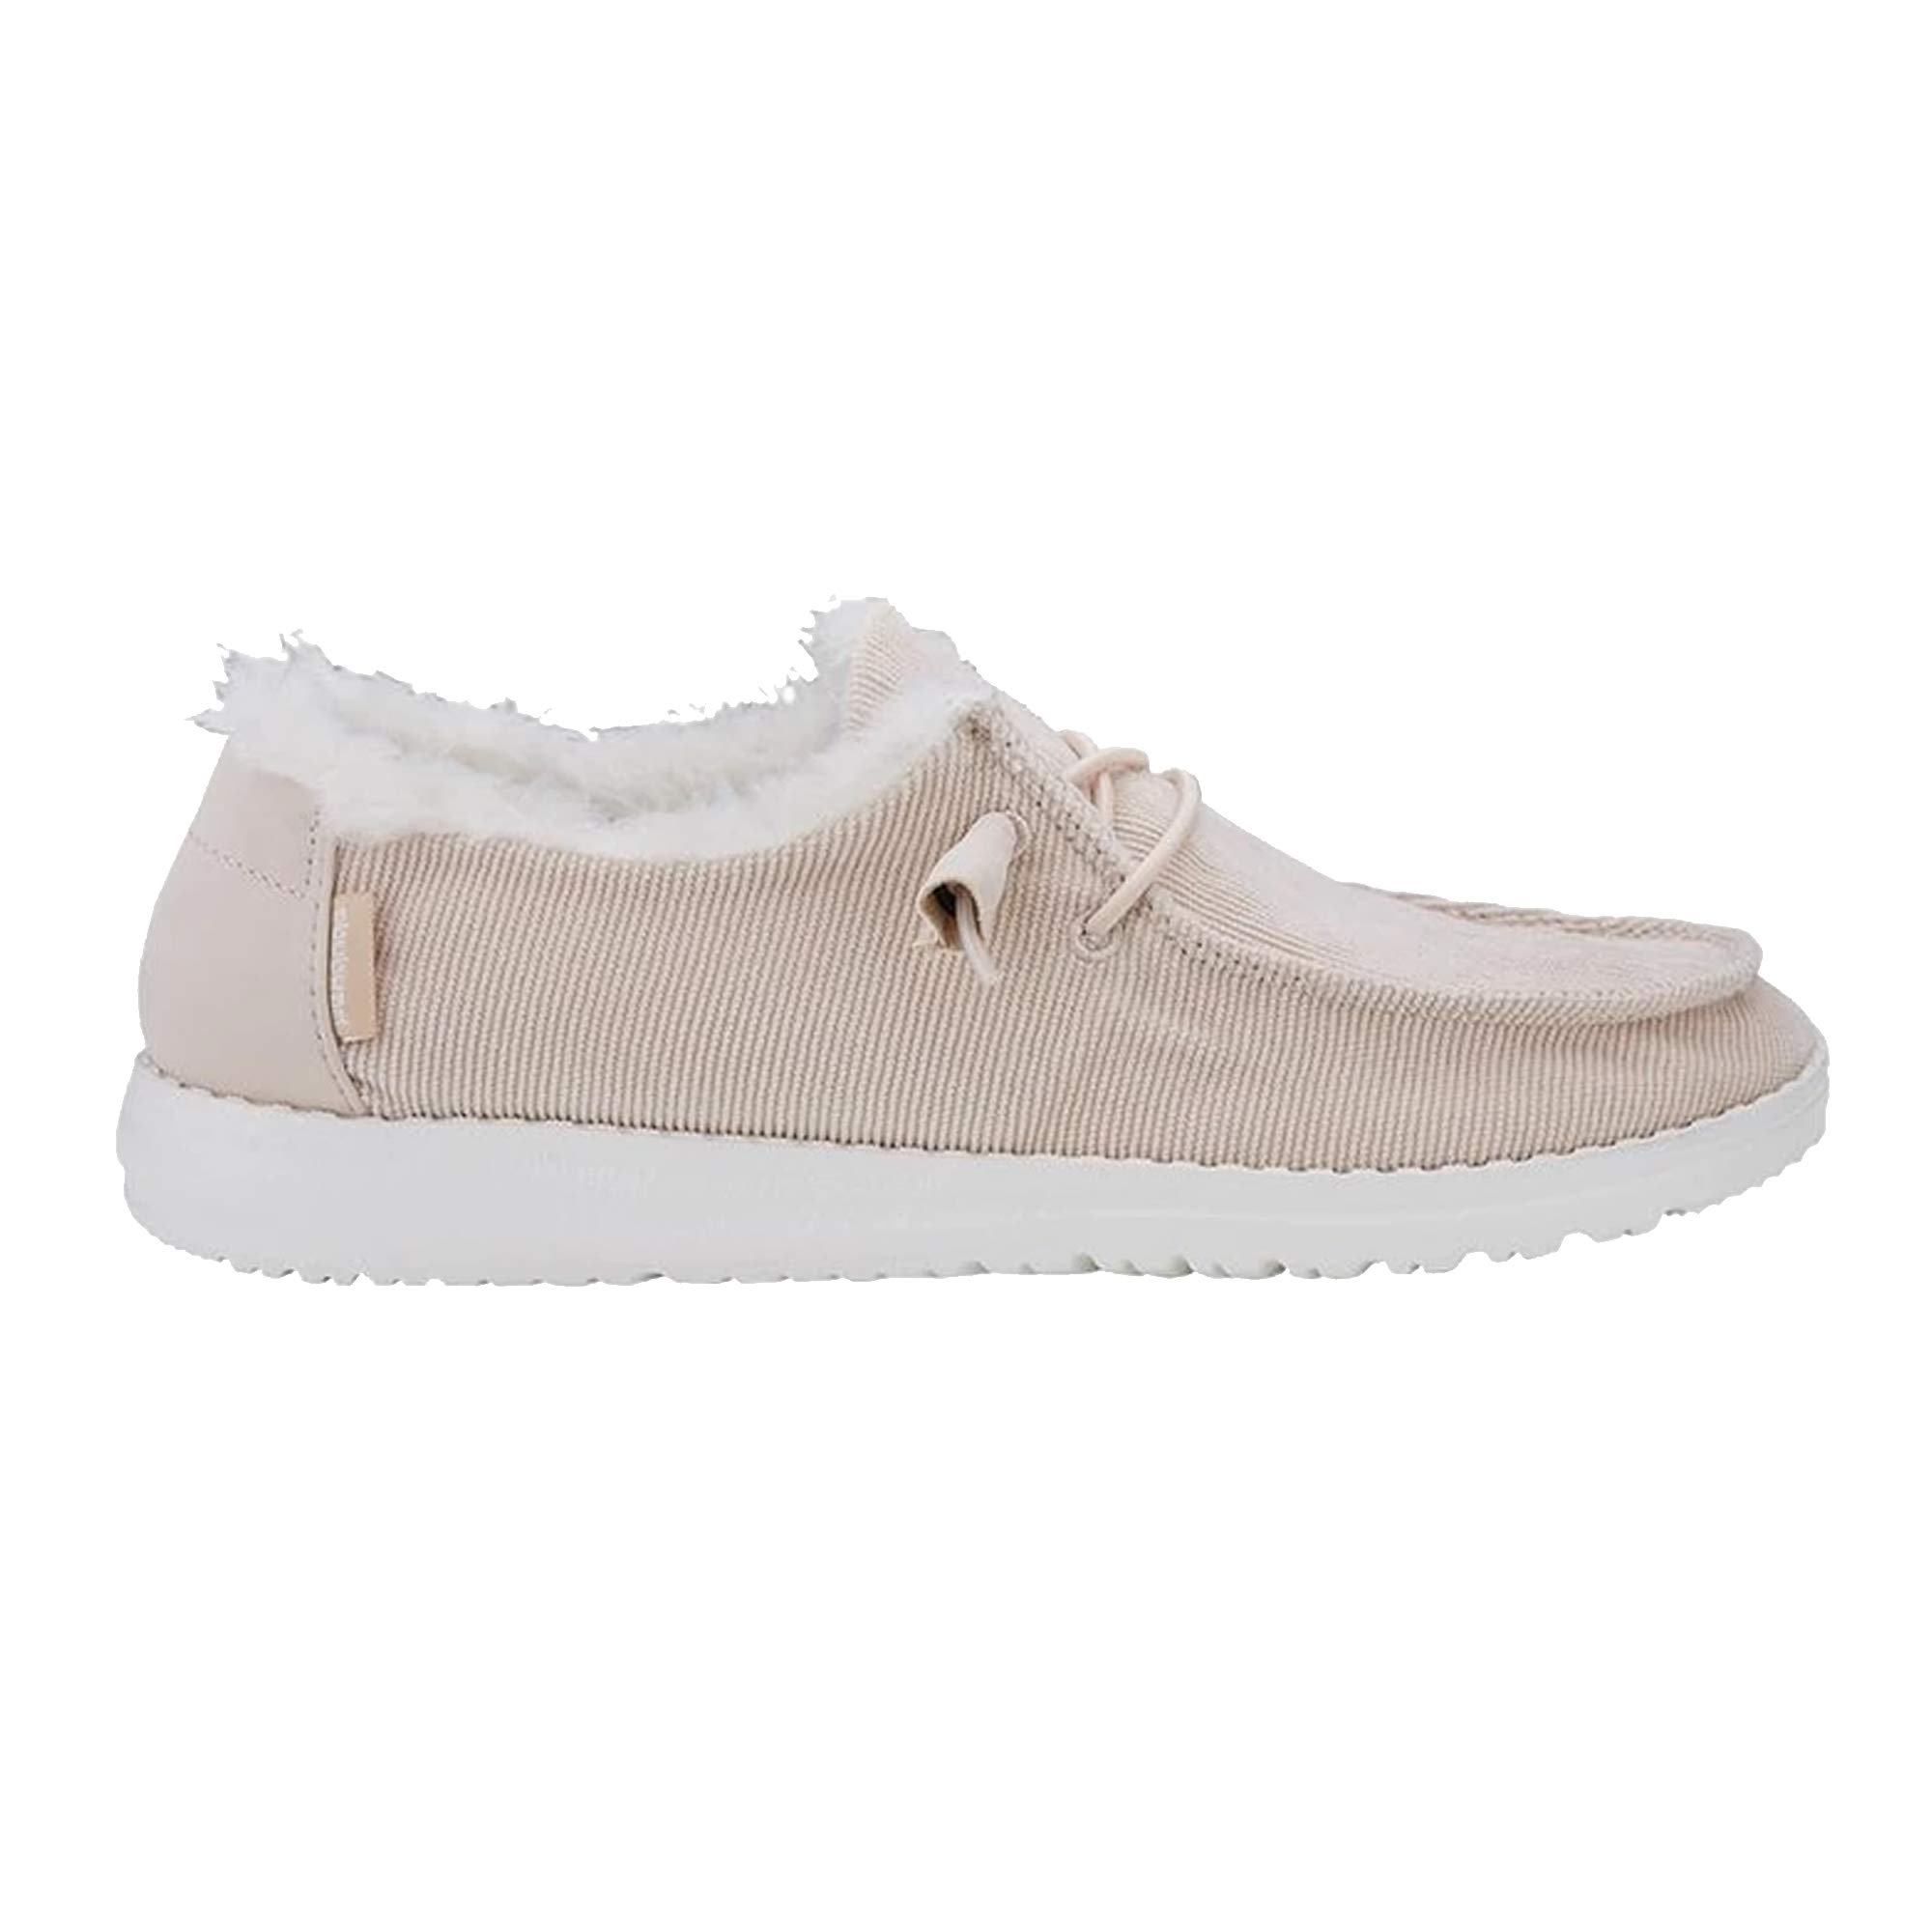 Hey Dude Shoes Women's Wendy Corduroy Shoes (5, Cream) Pink by Hey Dude